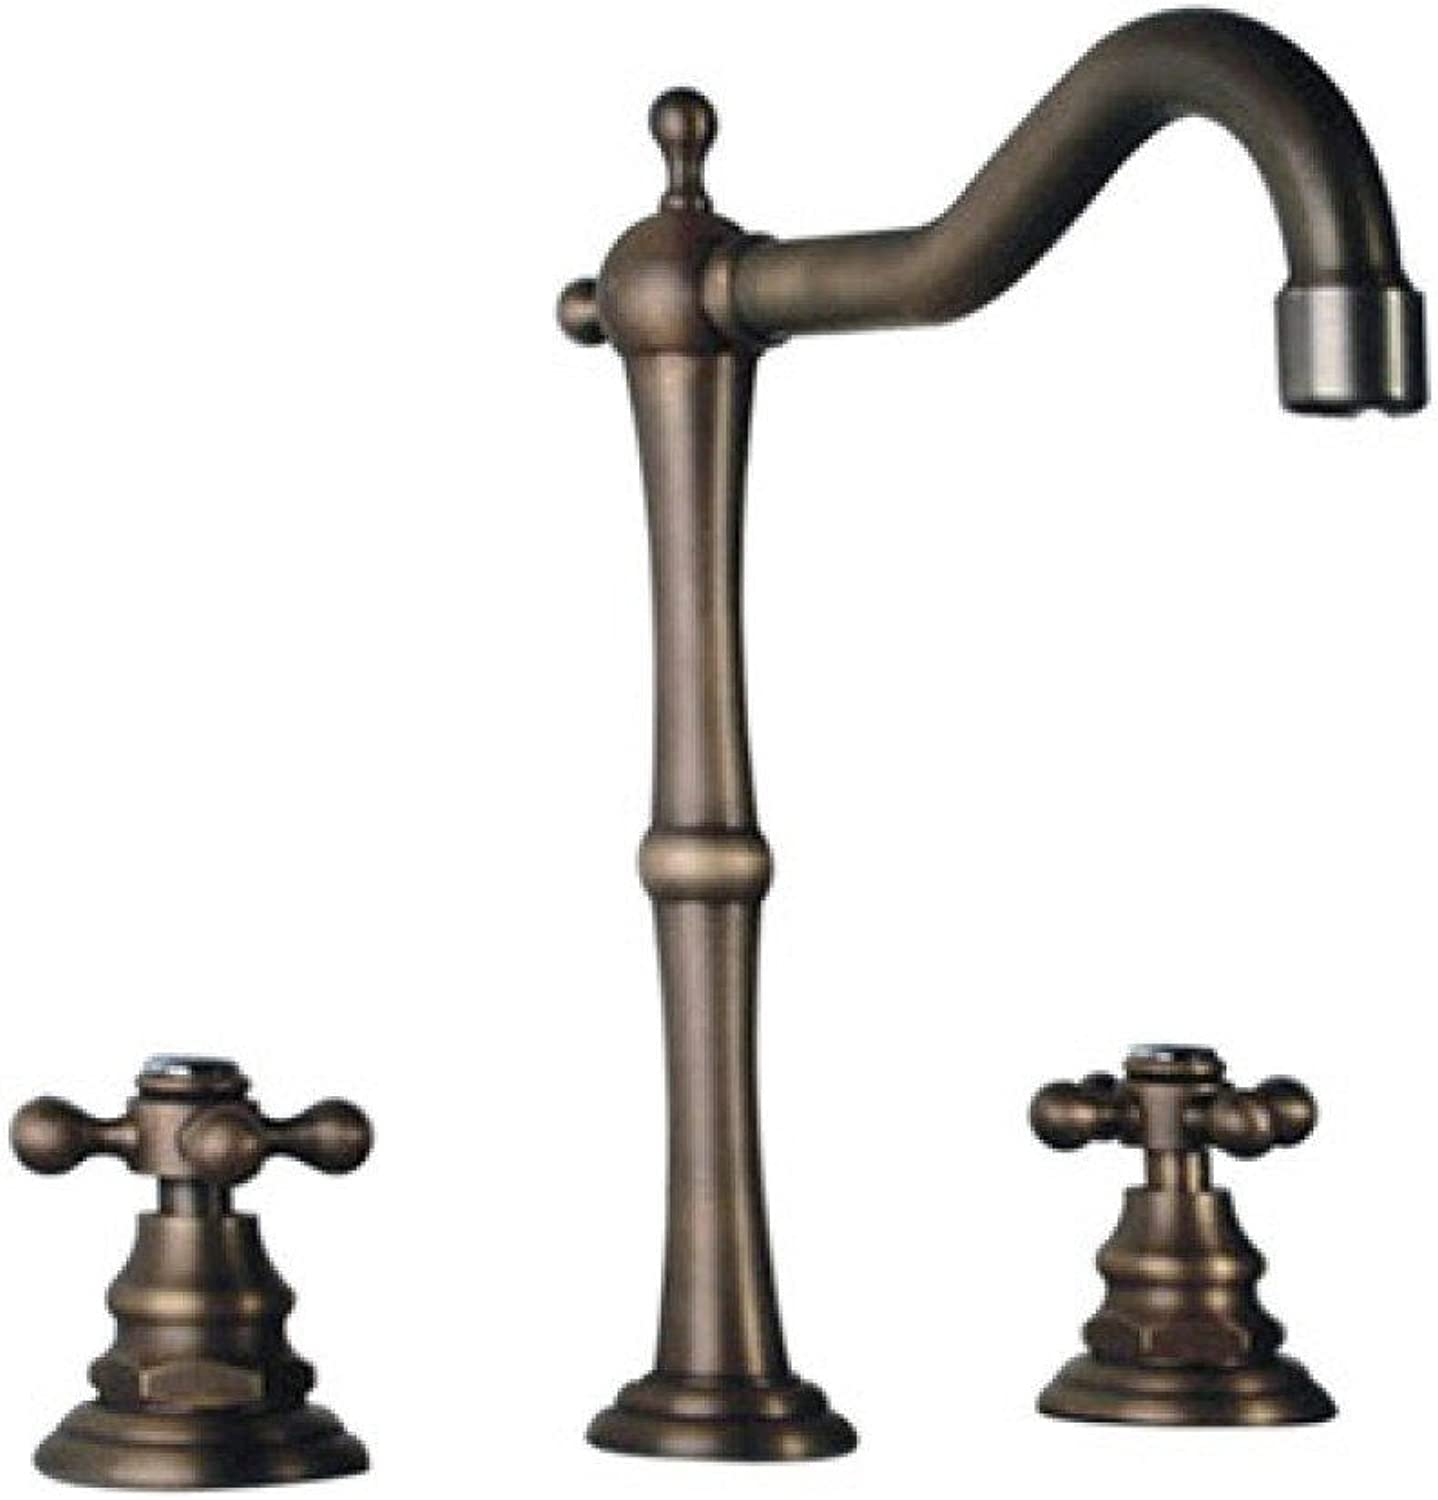 YIHANG @ All Copper Three Holes Split Hot And Cold Mixed Water Valve Basin Faucet,Bronze